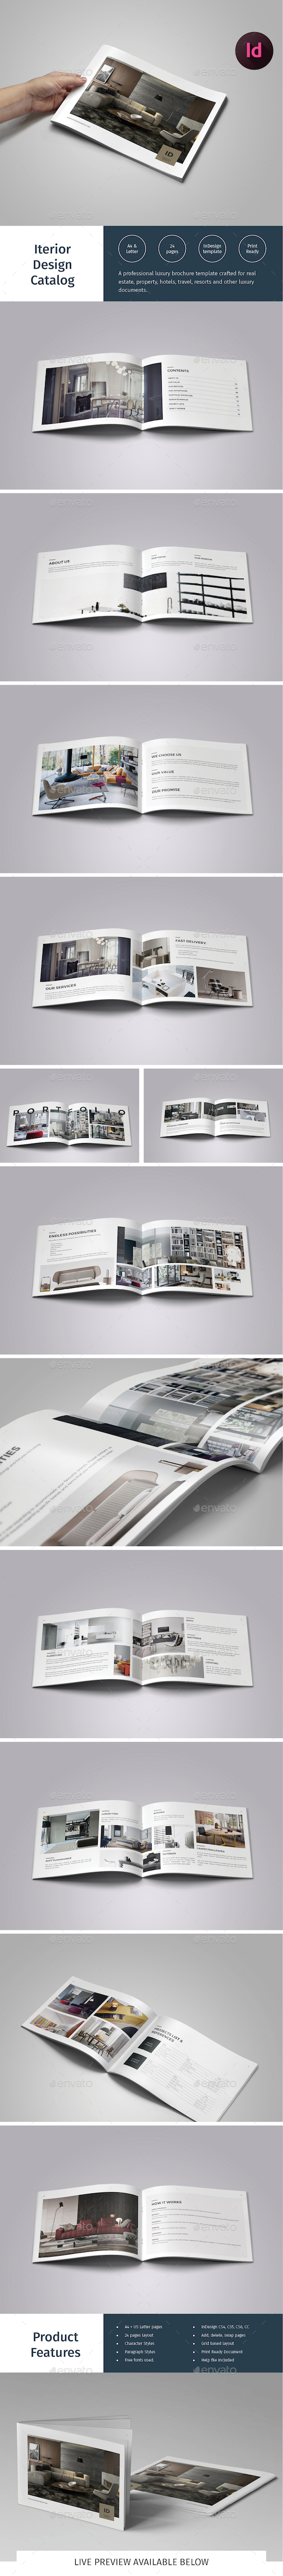 Interior Design Catalog - Catalogs Brochures